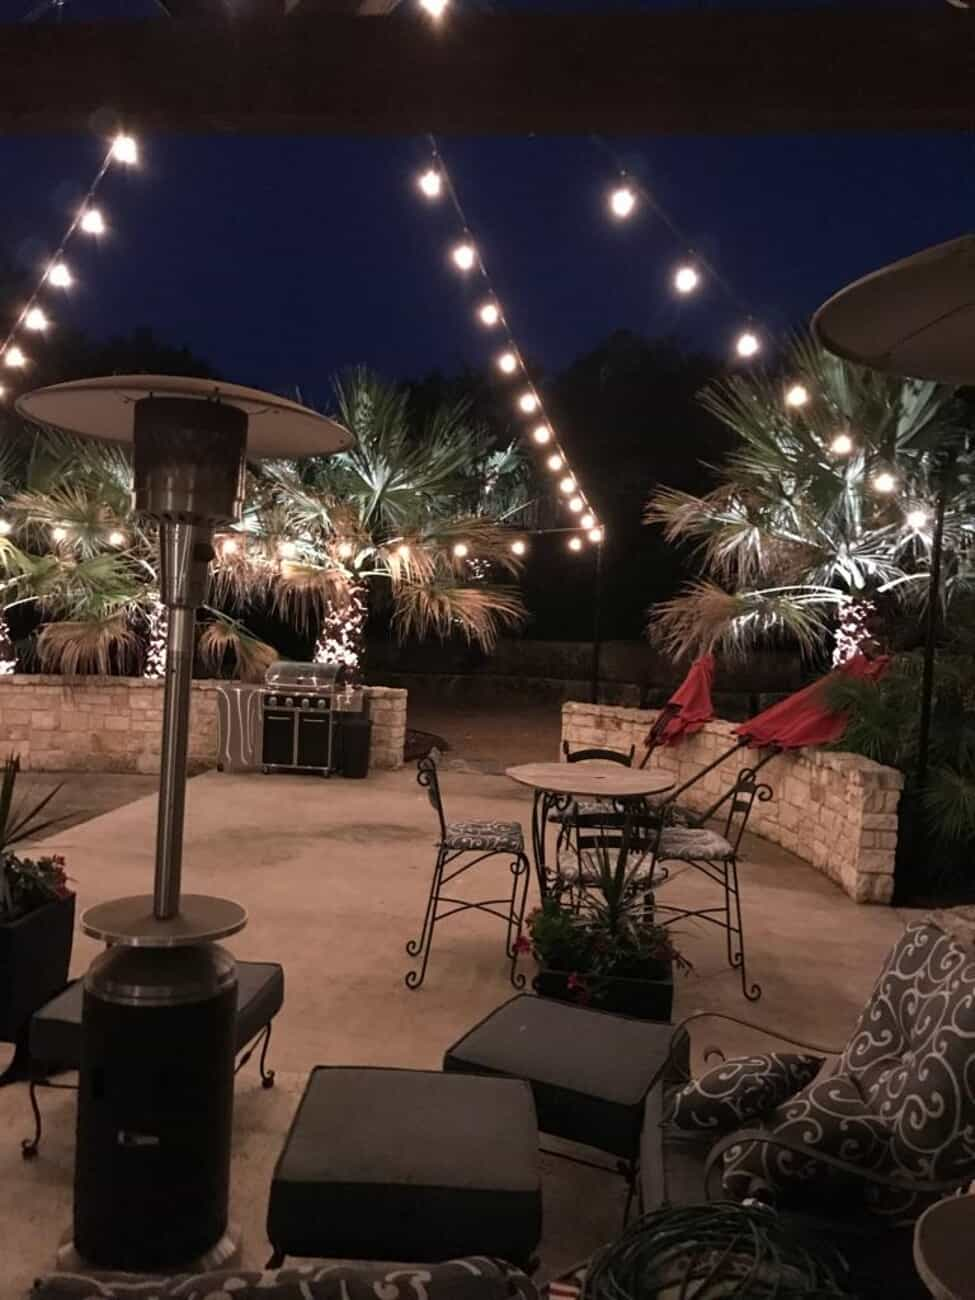 residential back yard with string lighting